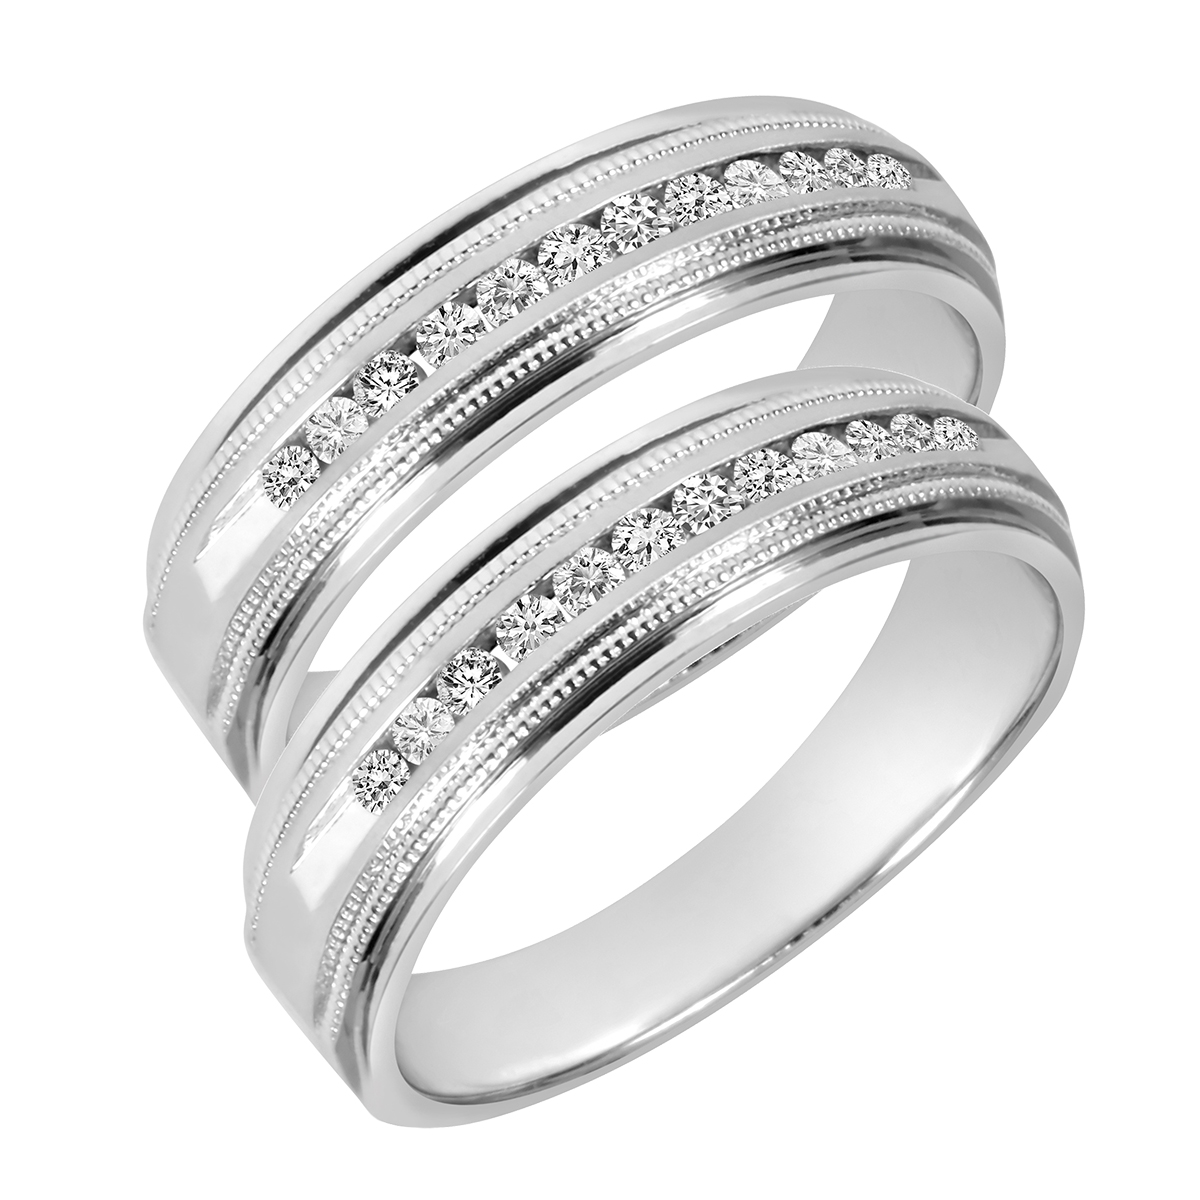 tw round cut mens same sex wedding band set 14k white gold - Same Sex Wedding Rings